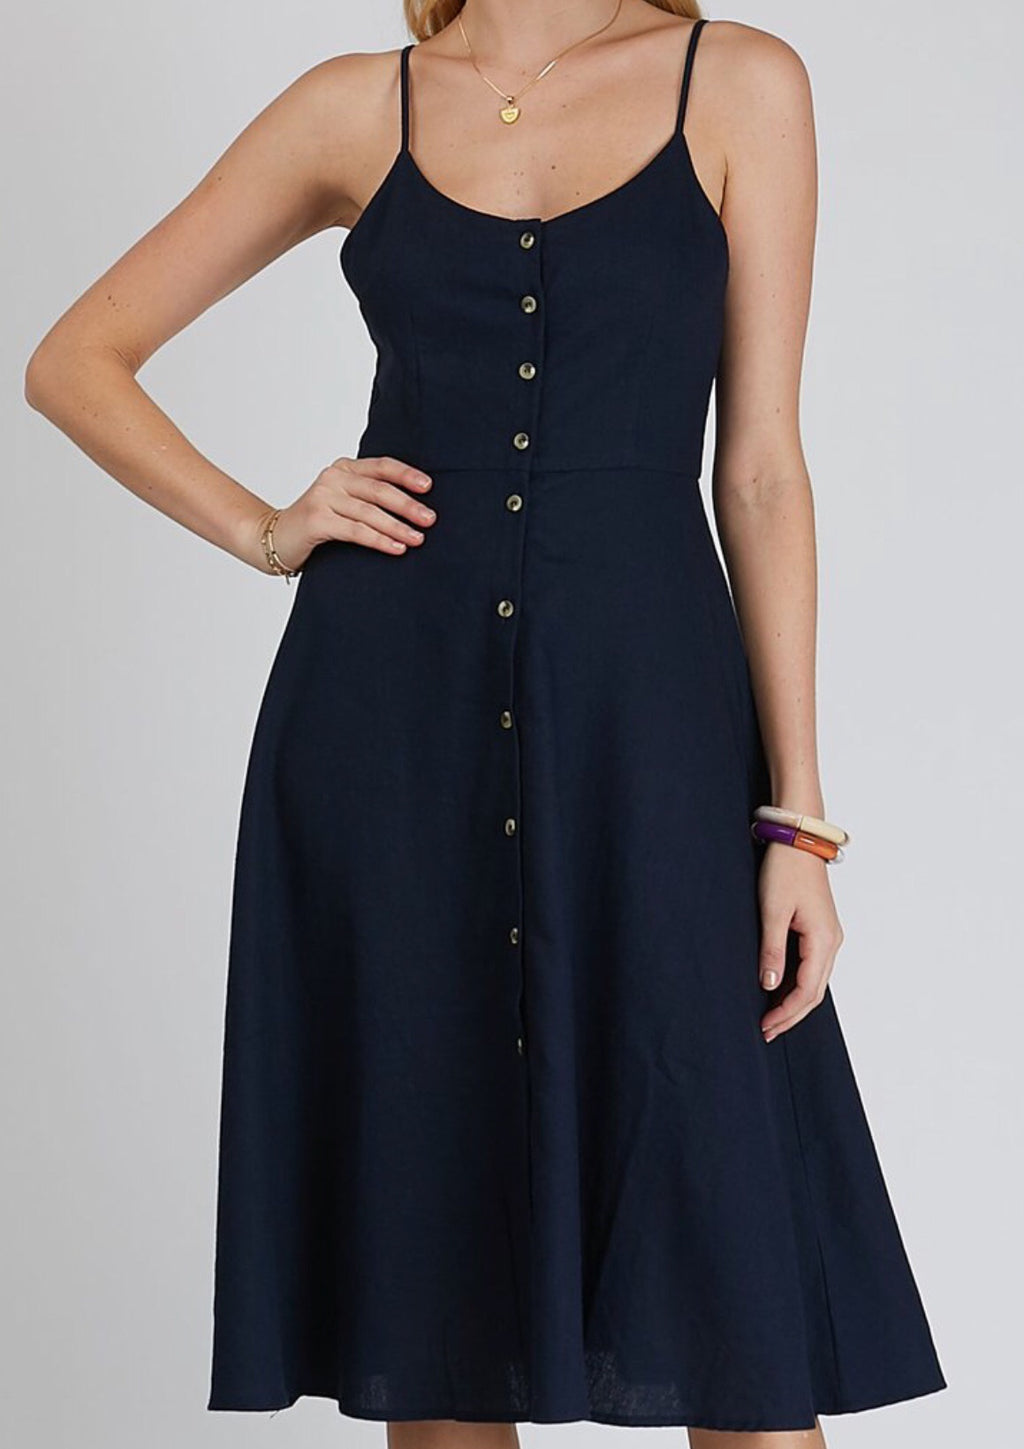 Midsummer linen dress - navy